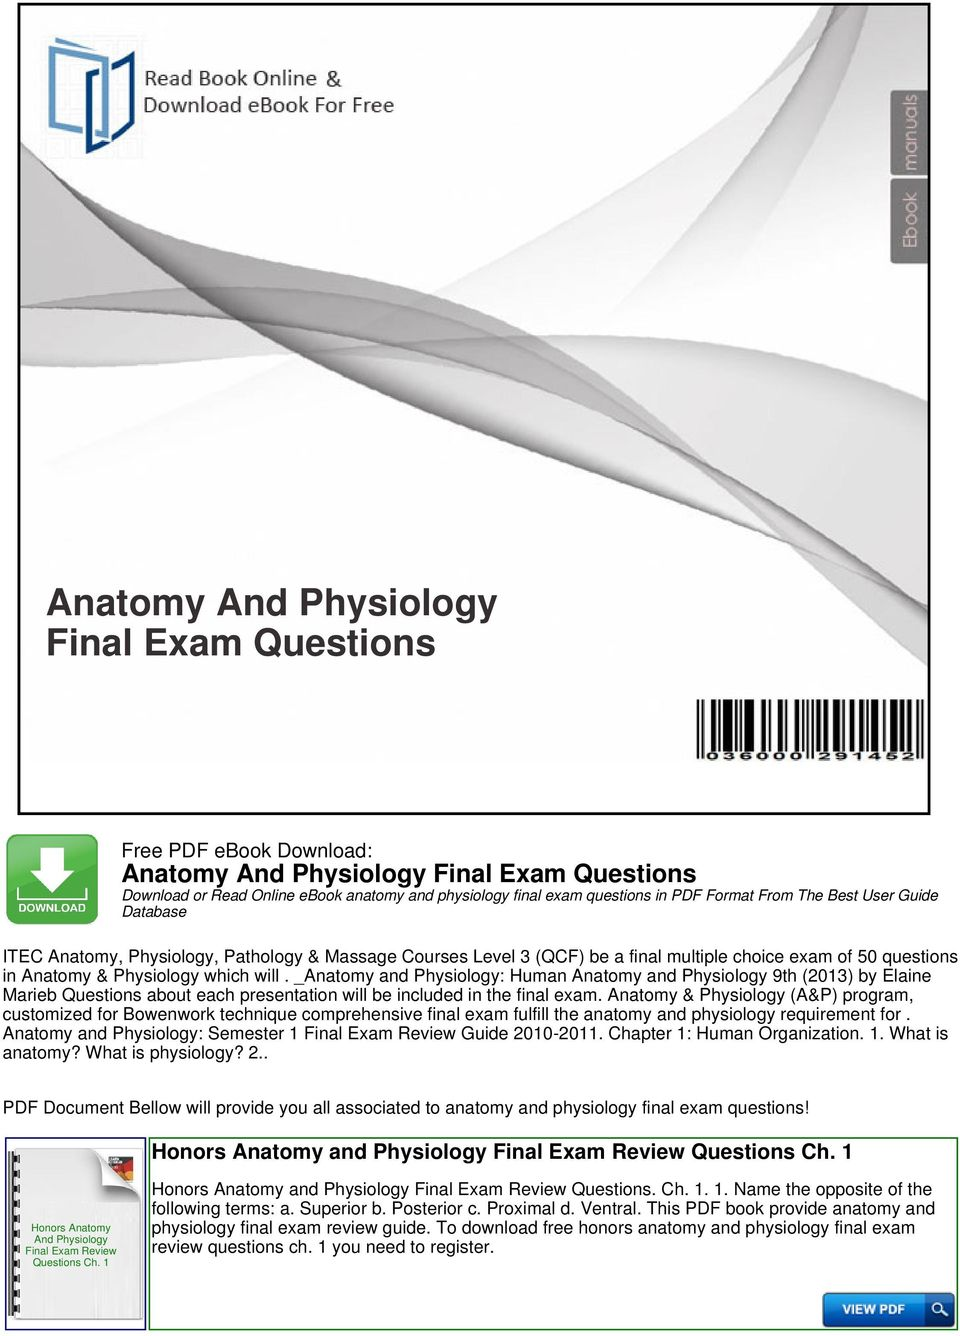 Anatomy and physiology i final exam Coursework Writing Service ...